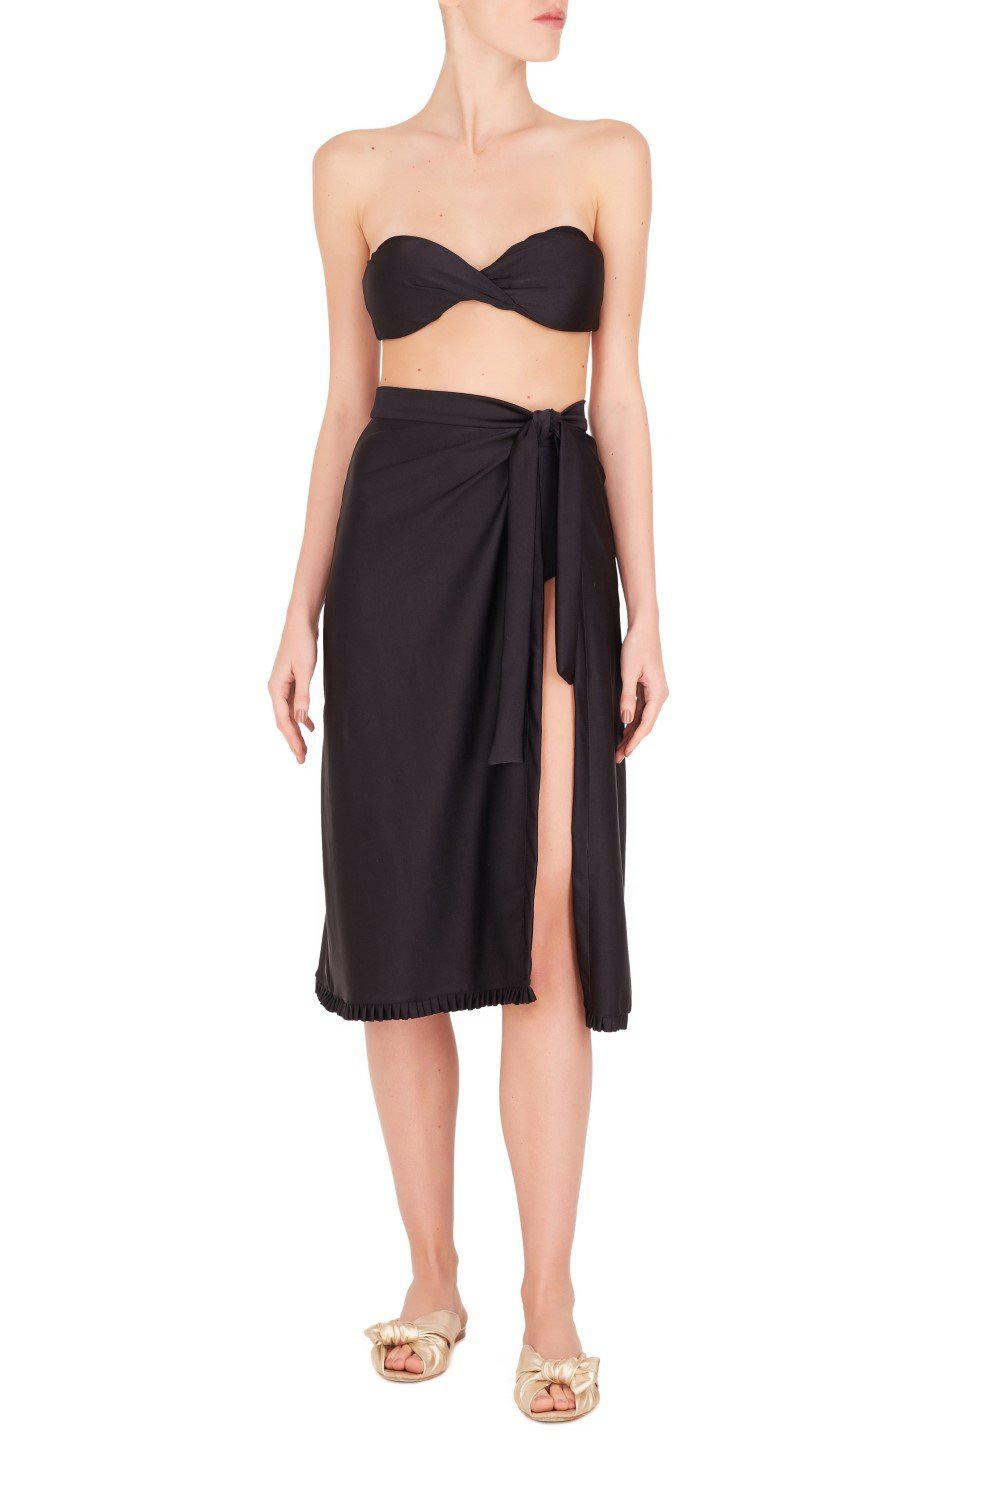 Fruits Exotiques Solid Pareo Skirt with Frills